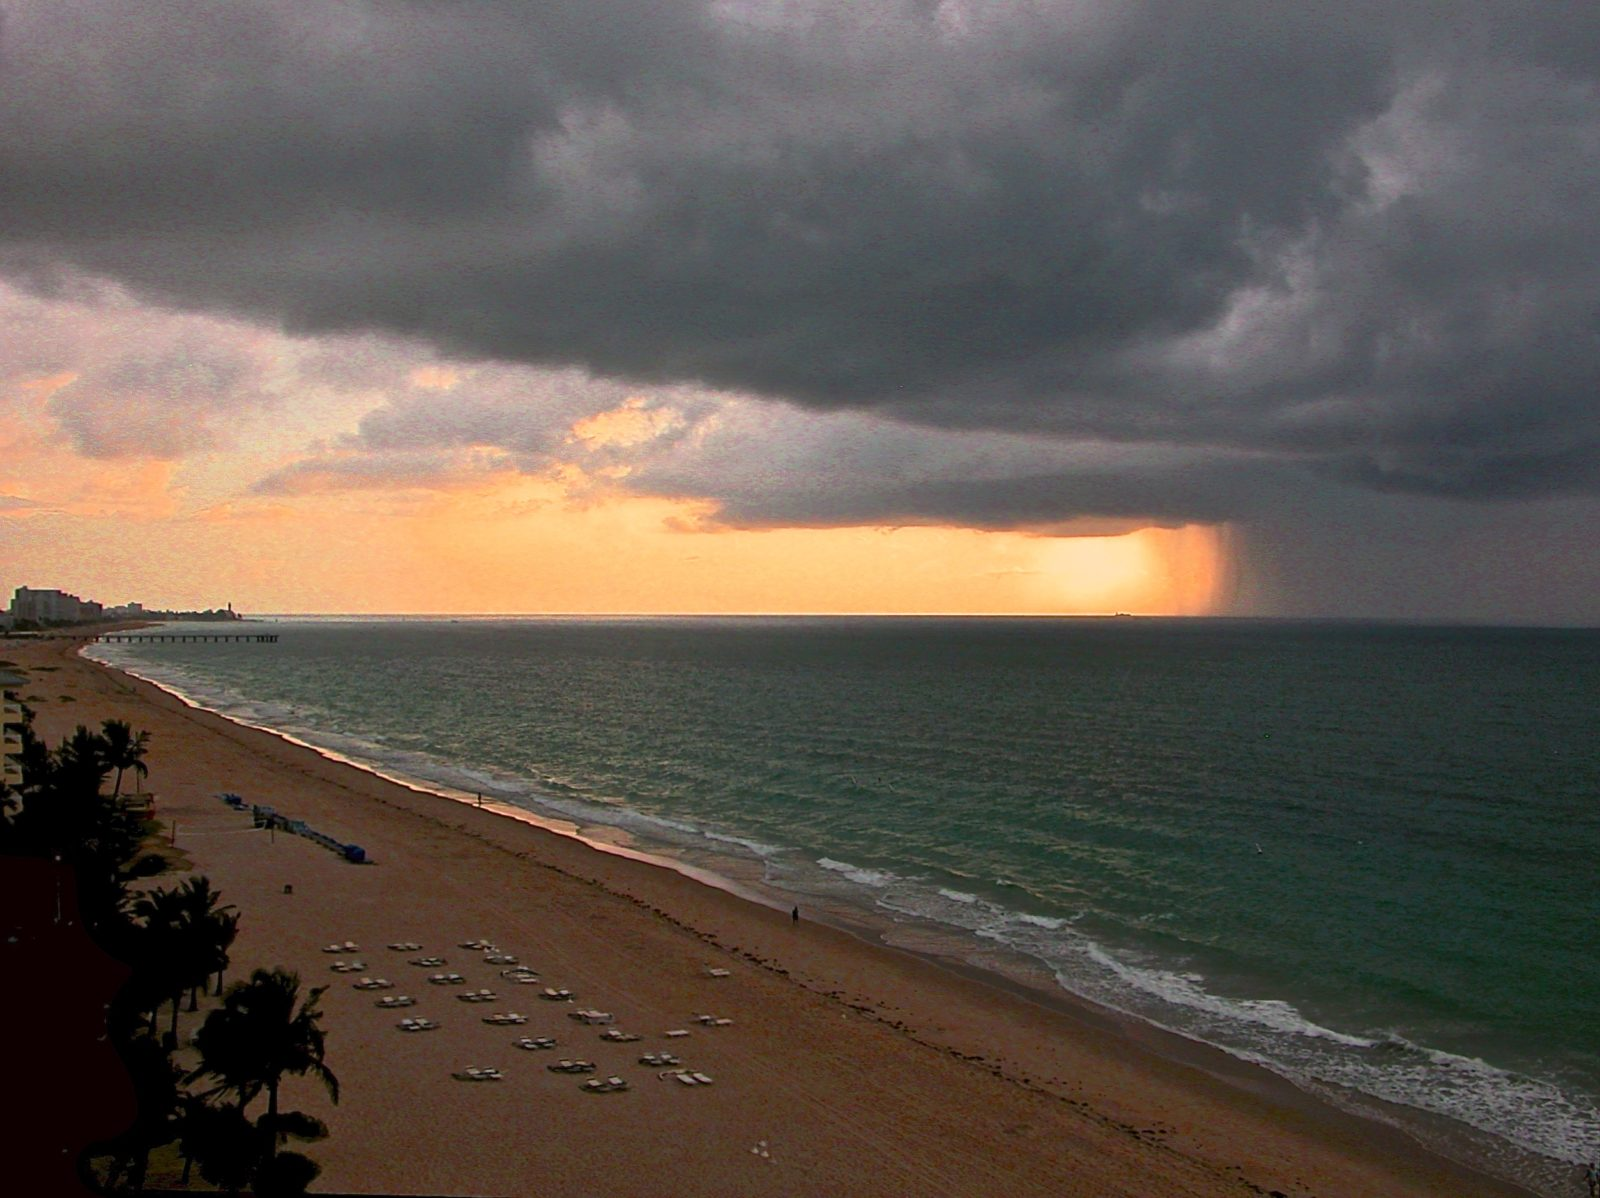 Approaching Storm off Deerfield Beach Lighthouse at Sunset